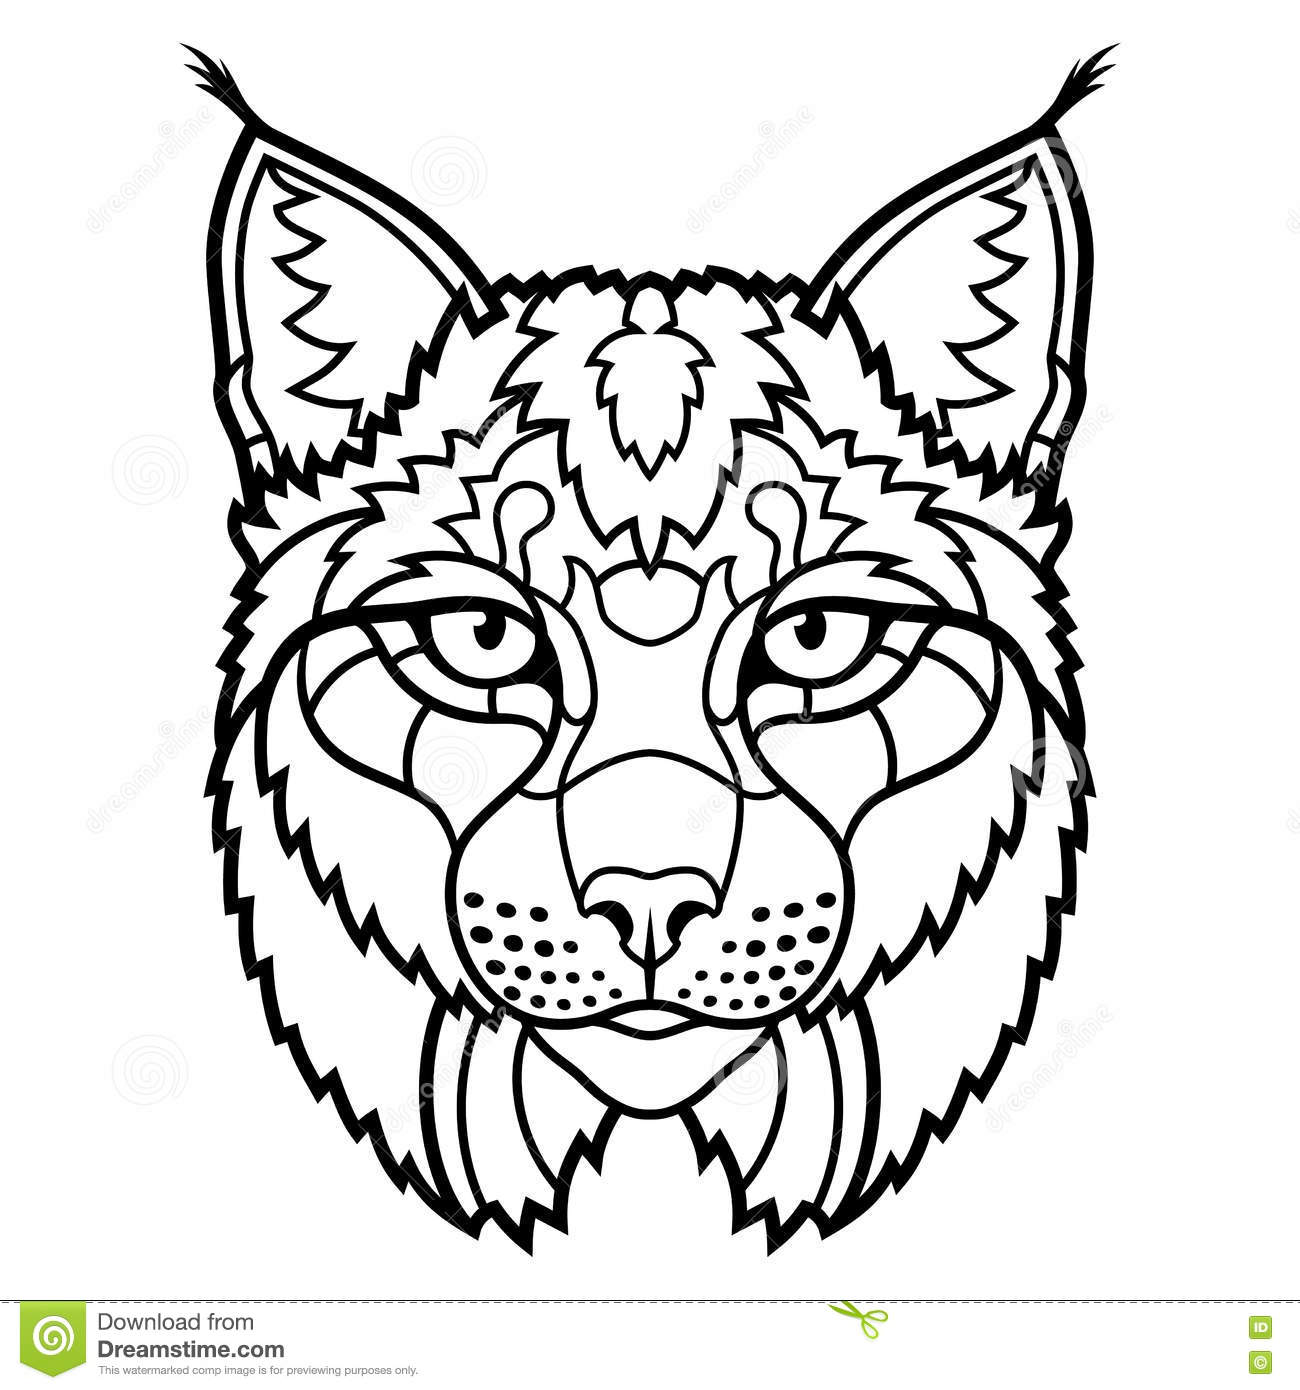 Wildcat Lynx Mascot Head Isolated Sketch Line Art Stock